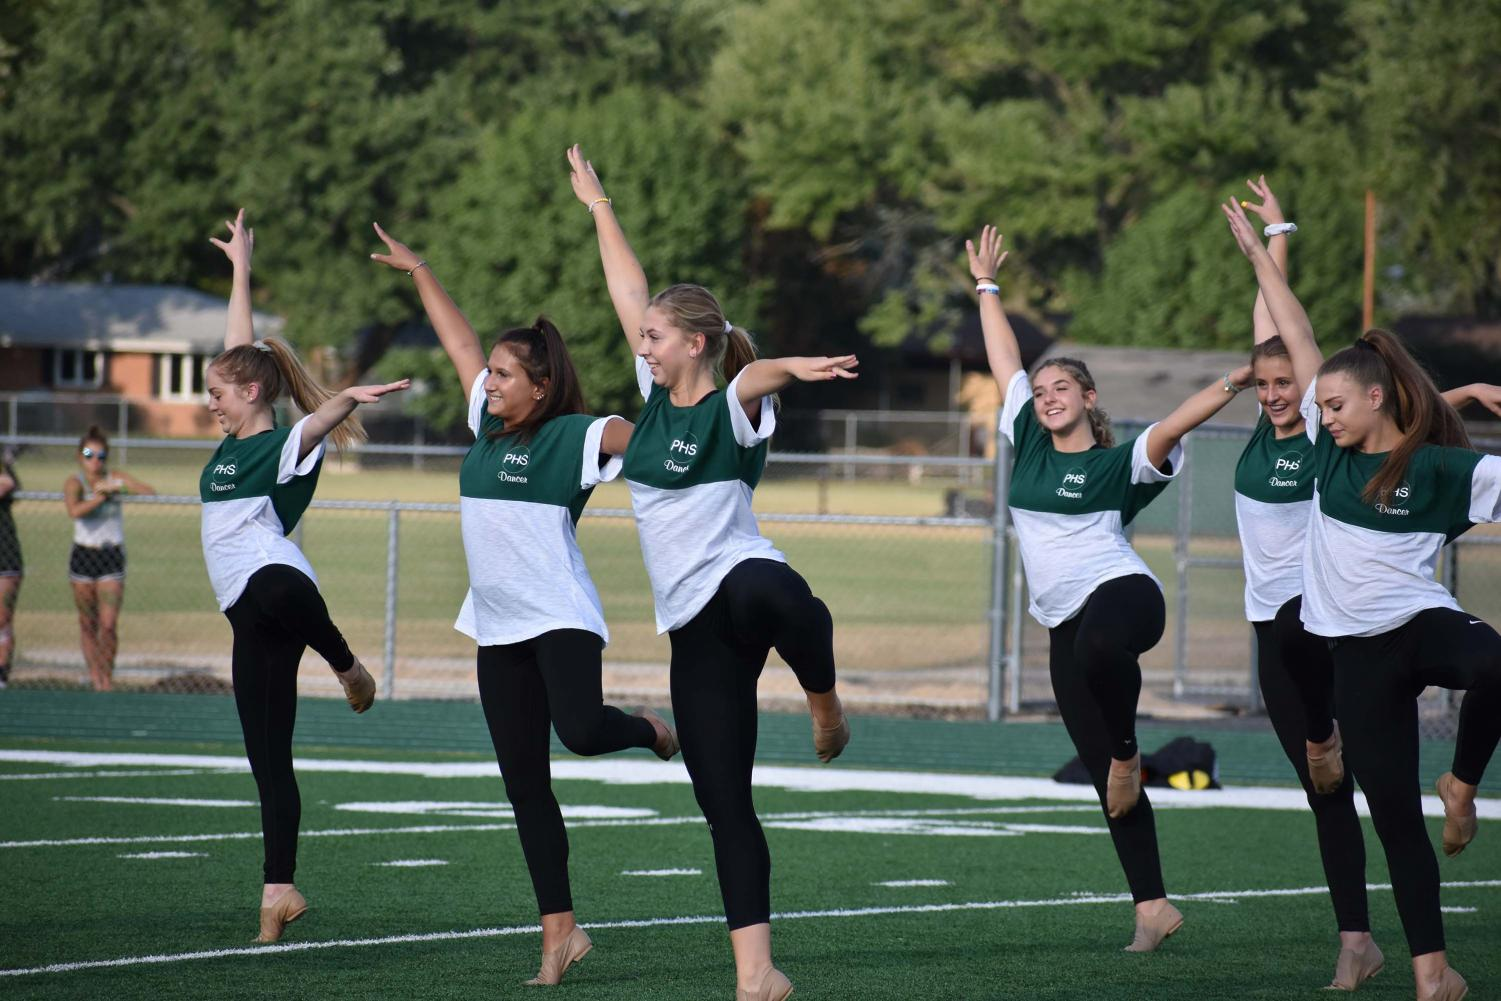 Sophomore+Emma+Rivecco%2C+seniors+Madison+Rambo+and+Olivia+Arriaga%2C+sophomores+Elise+Arriaga+and+Kayla+Dvorak%2C+and+junior+Jenna+Obman+hold+their+legs+in+pique+during+the+poms+routine.